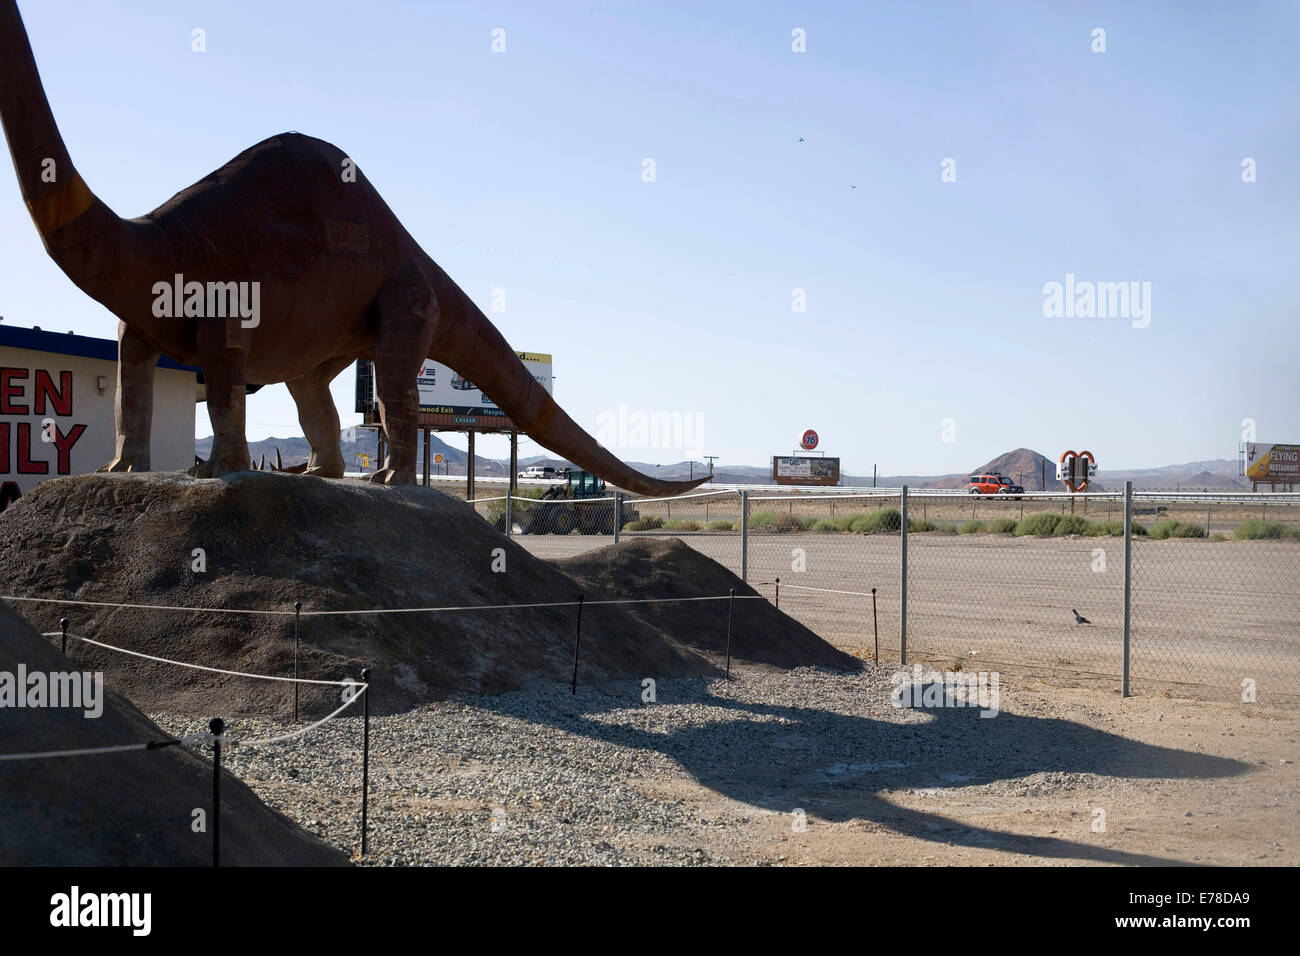 A model diplodocus dinosaur by the road side in Las Vegas - Stock Image